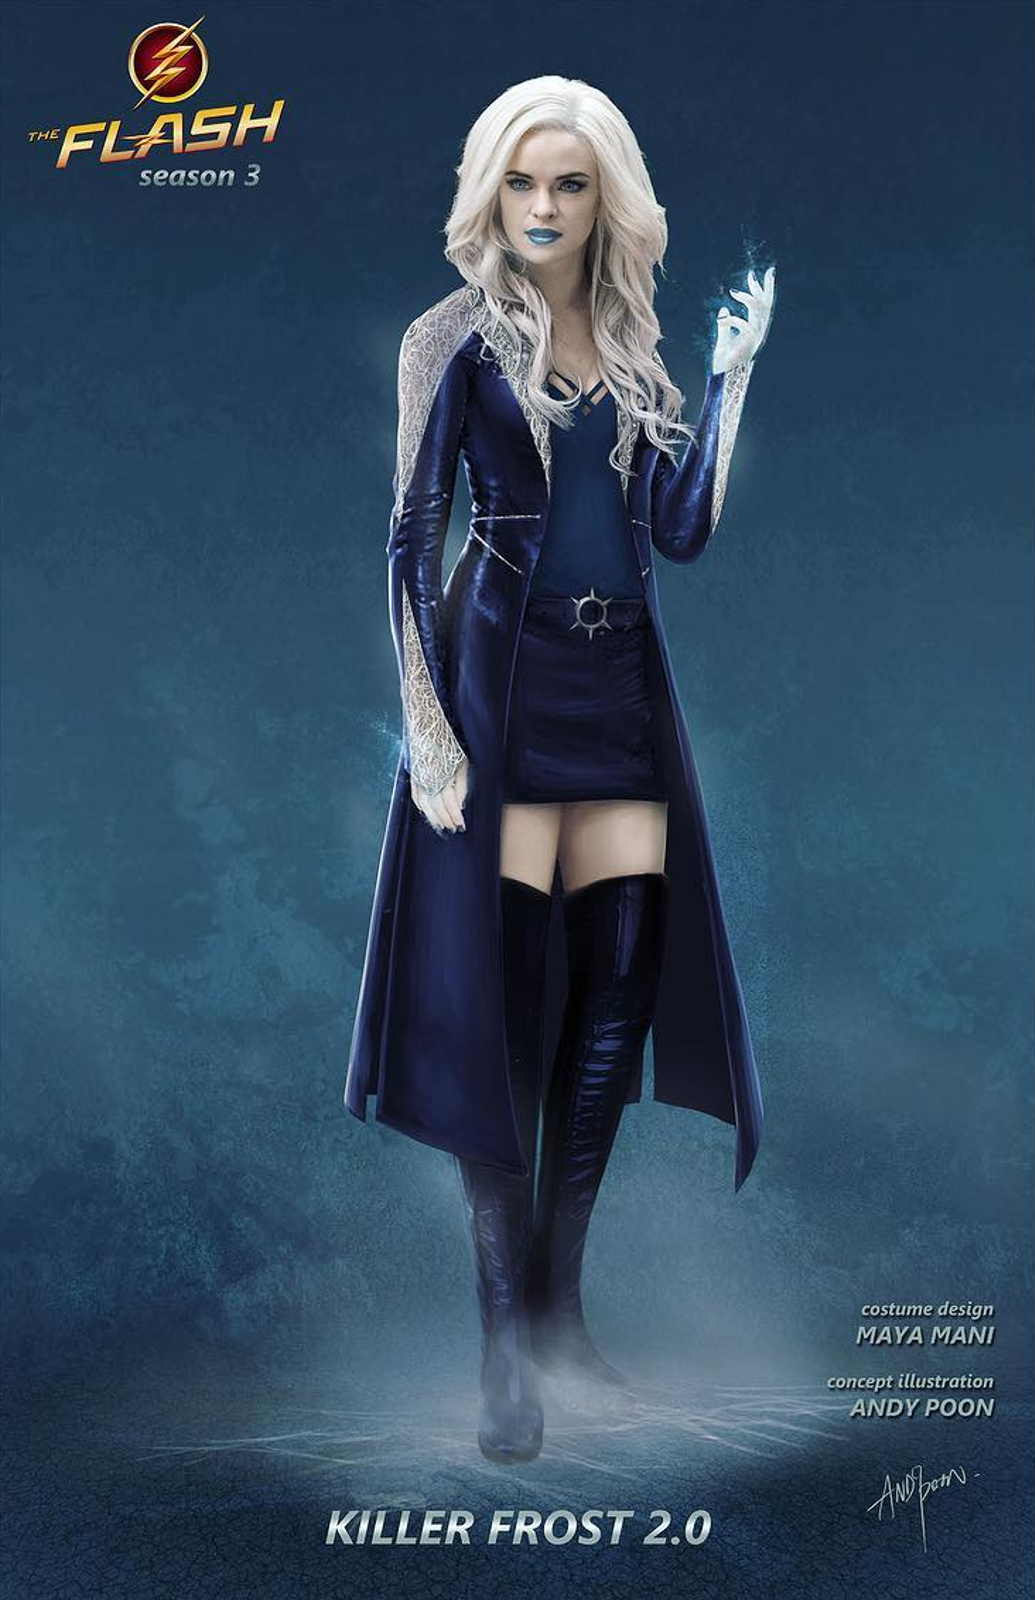 Hot Cakes The Flash Season 3 Killer Frost Cosplay Costumes